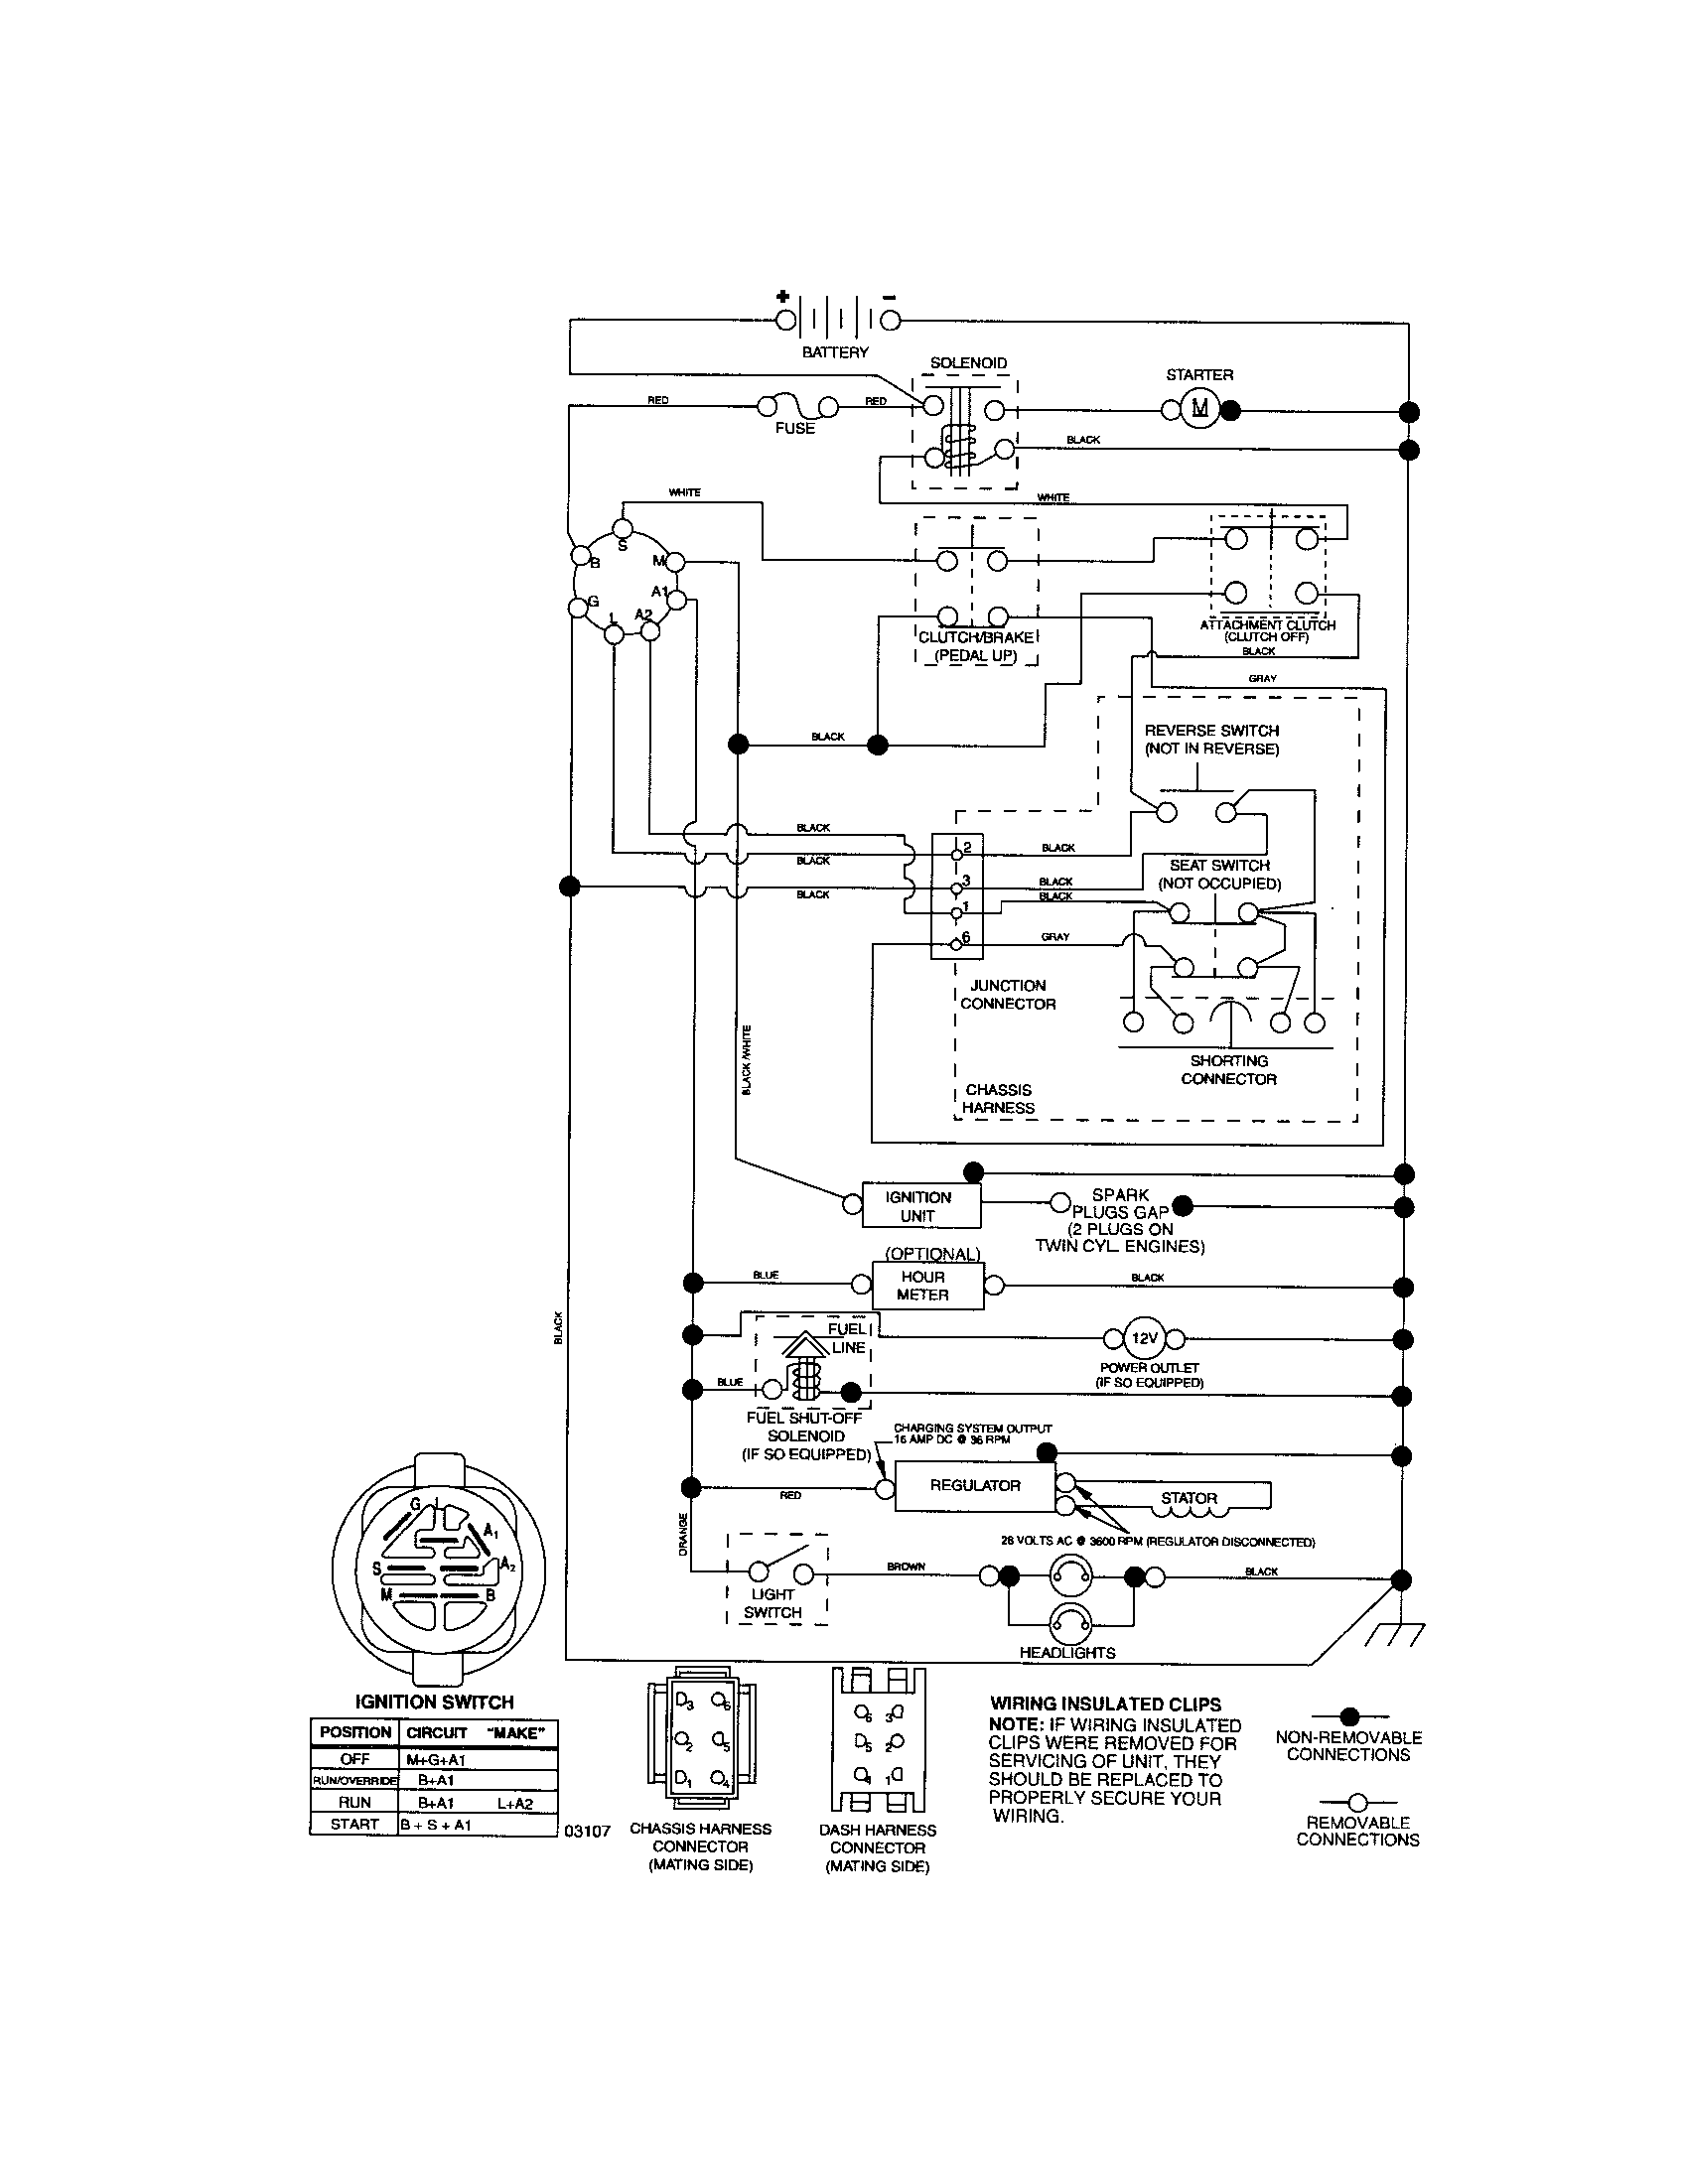 6af5f1447fd13c8443376822ddc1e105 craftsman riding mower electrical diagram wiring diagram sears tractor wiring diagram at eliteediting.co